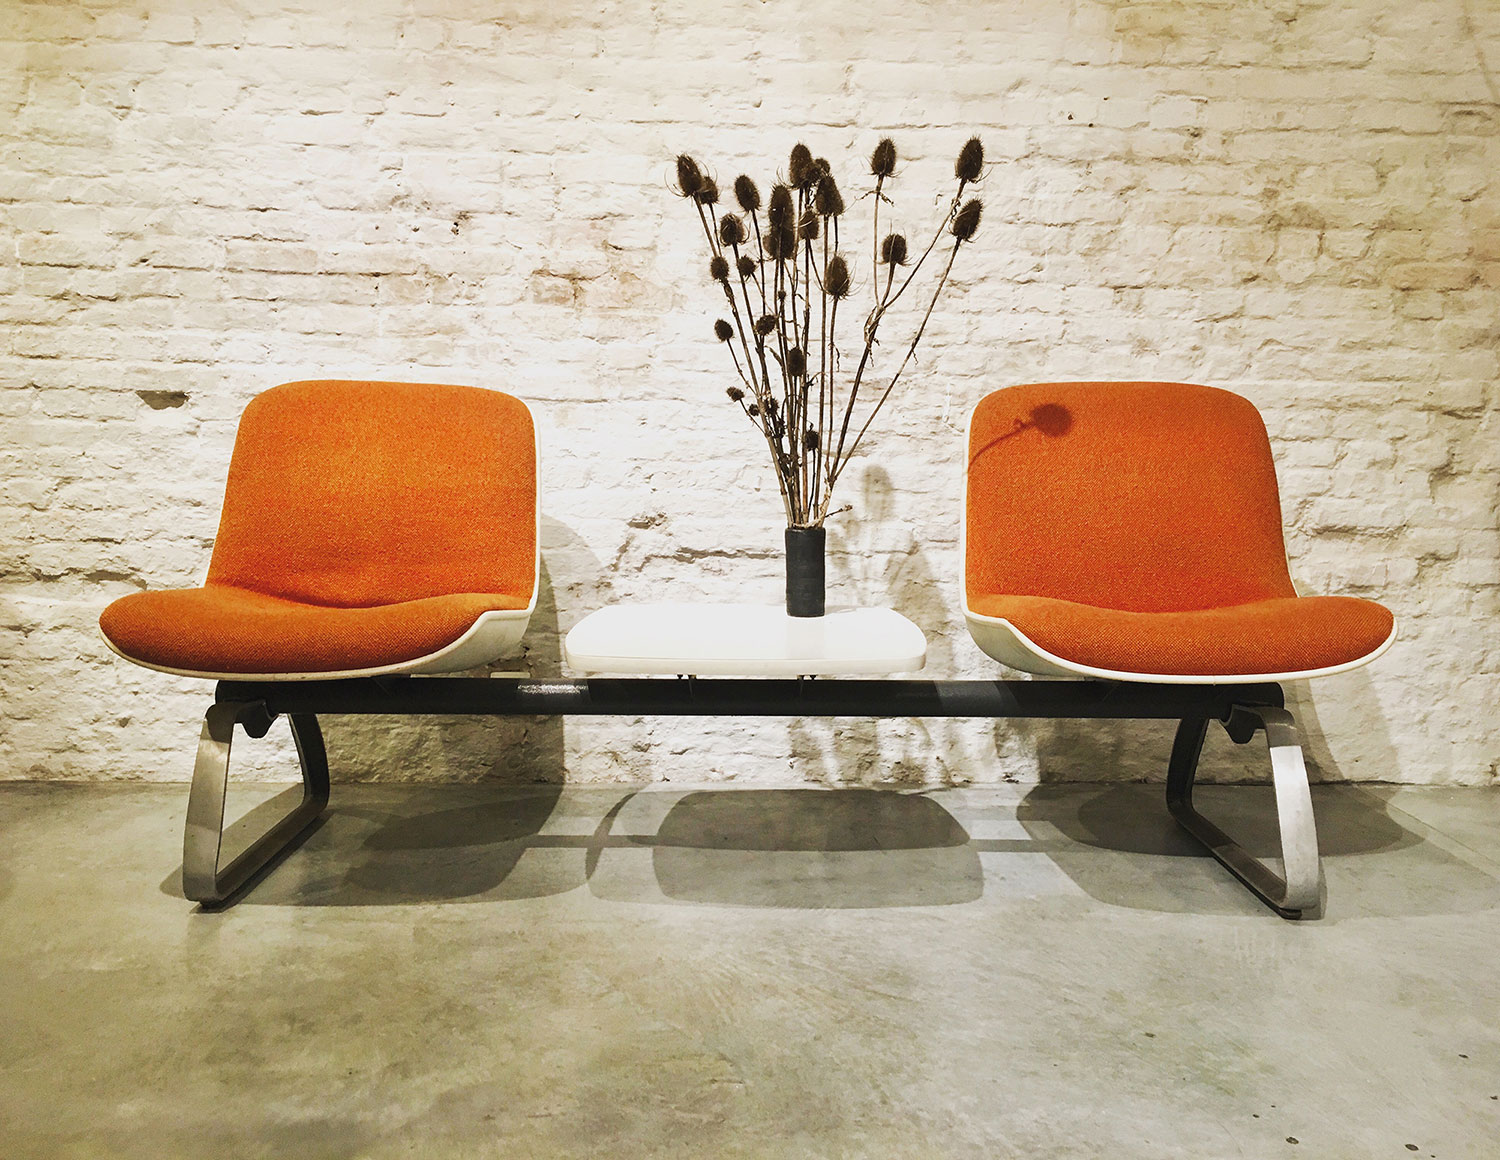 Die-Firma-vintage-shop-Antwerp-mid-century-waitingbench